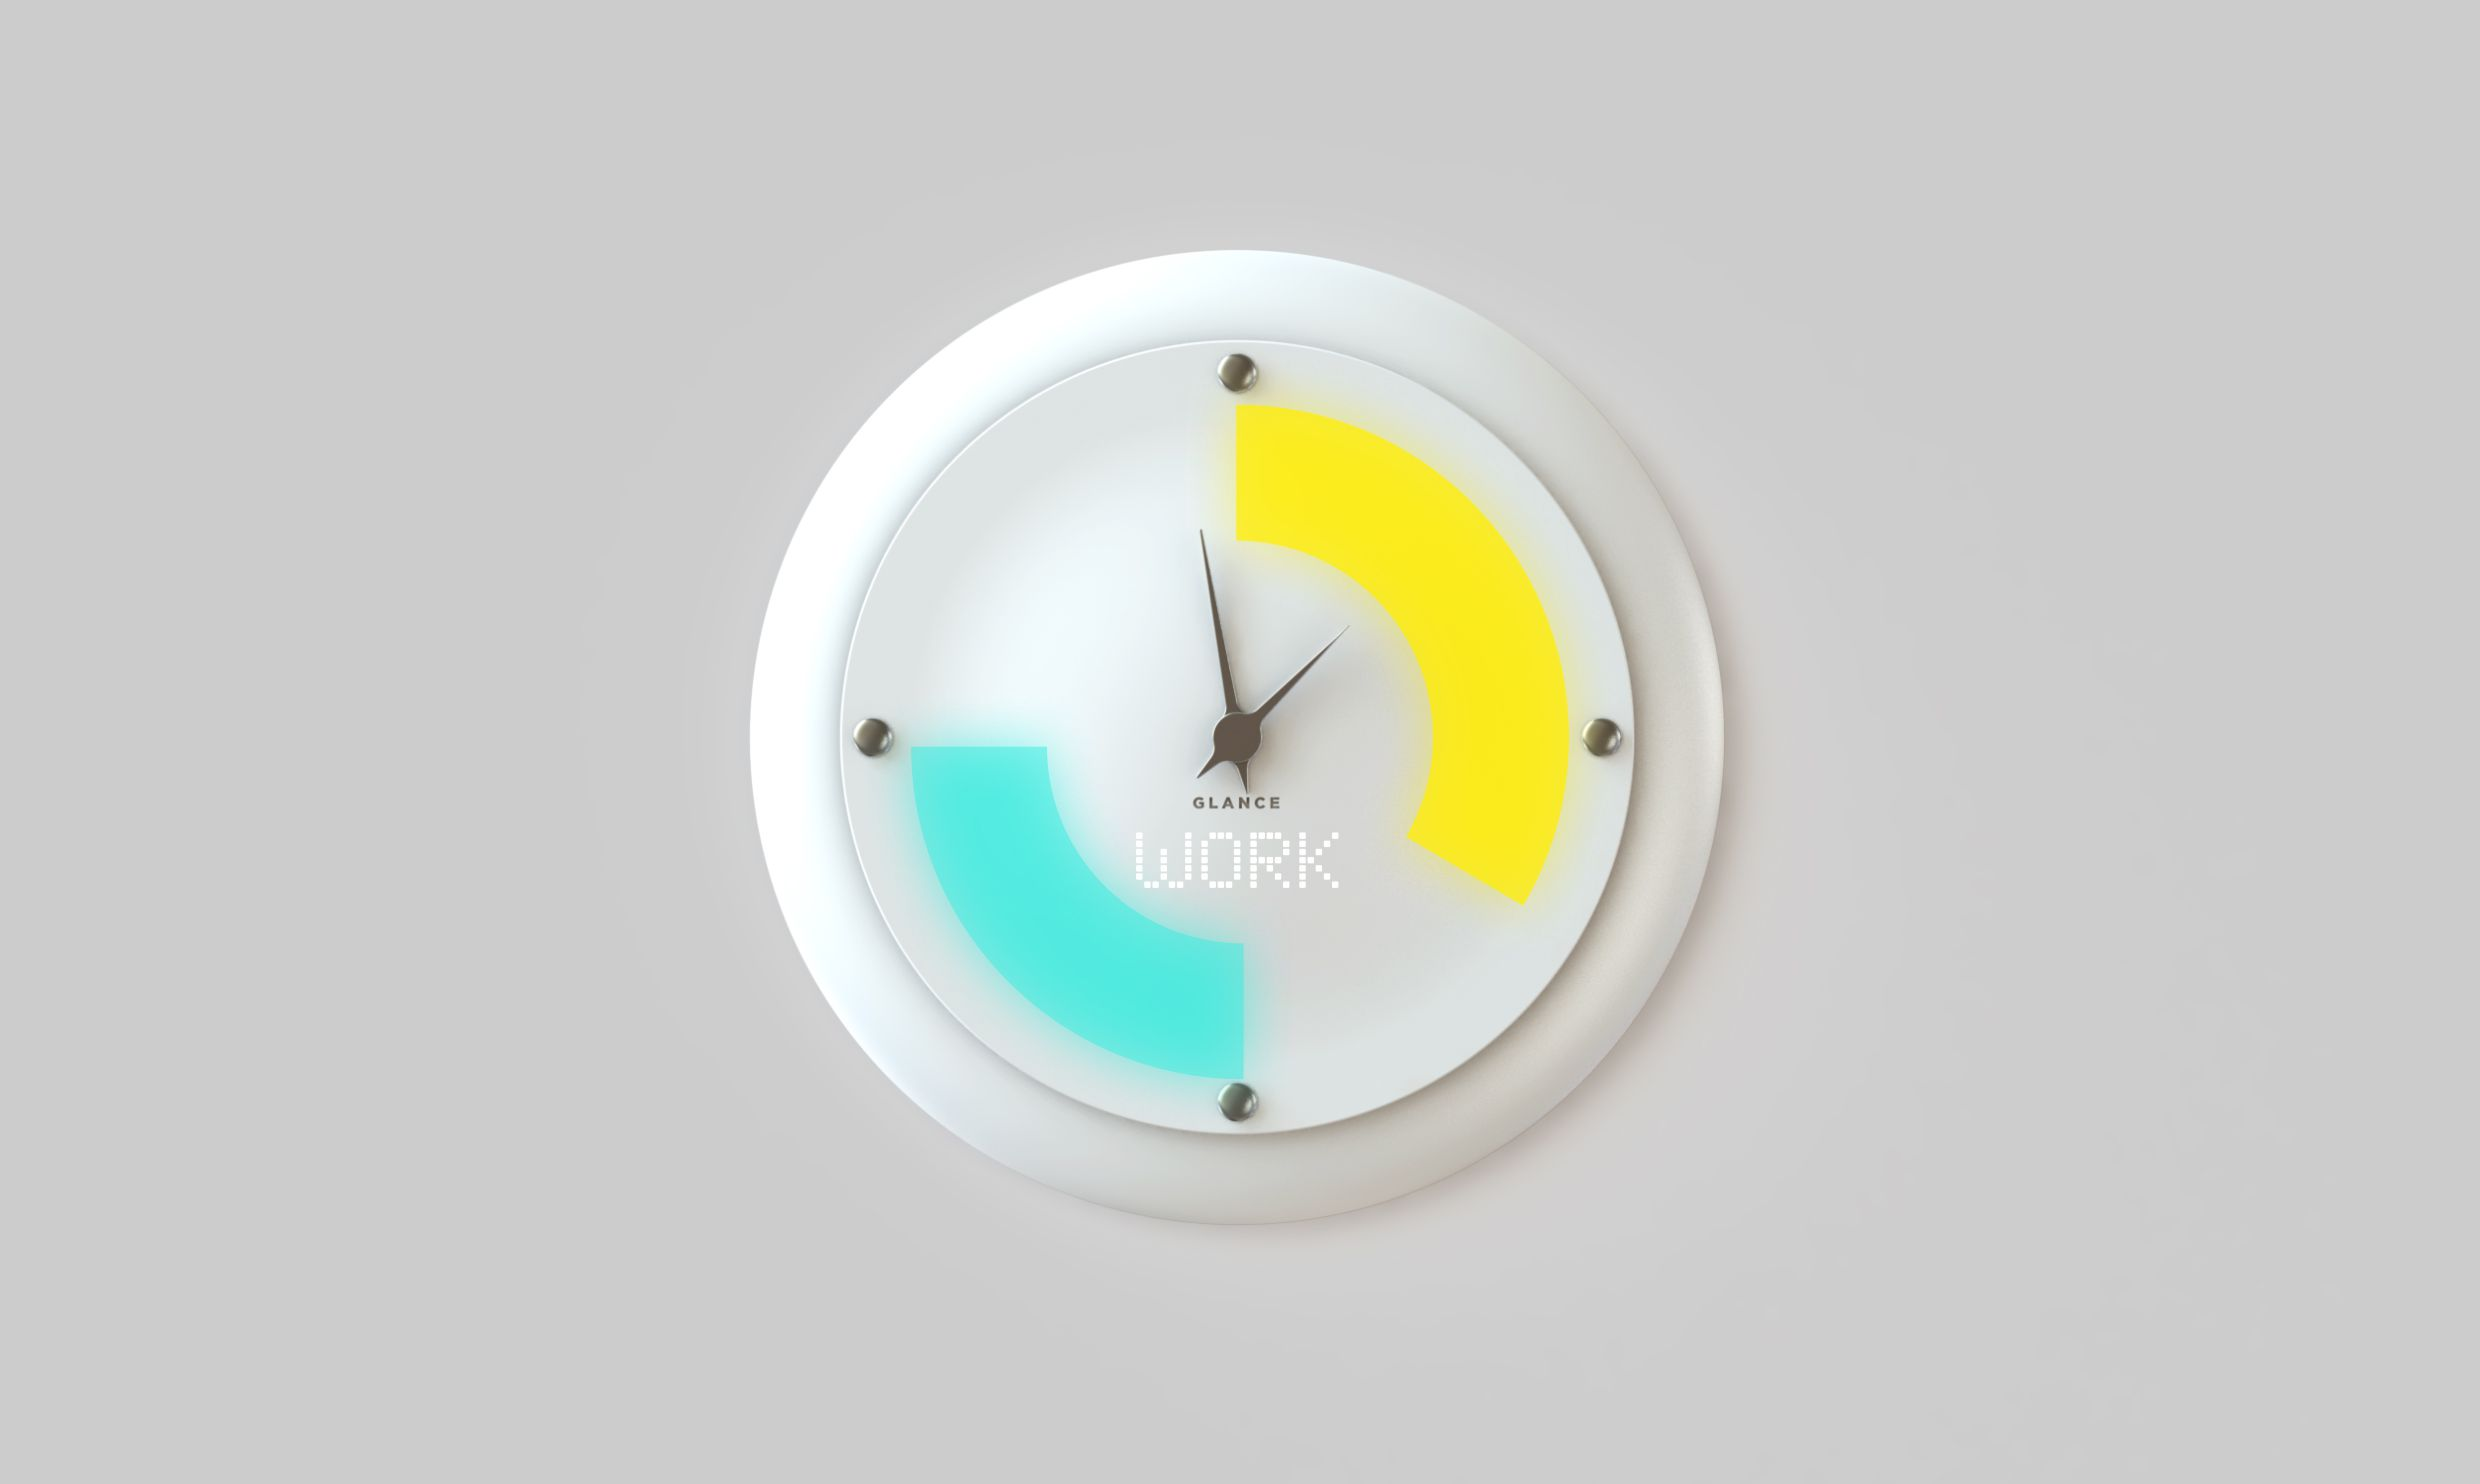 Meet glance a smart wall clock that displays more than the time meet glance a smart wall clock that displays more than the time techcrunch ccuart Choice Image